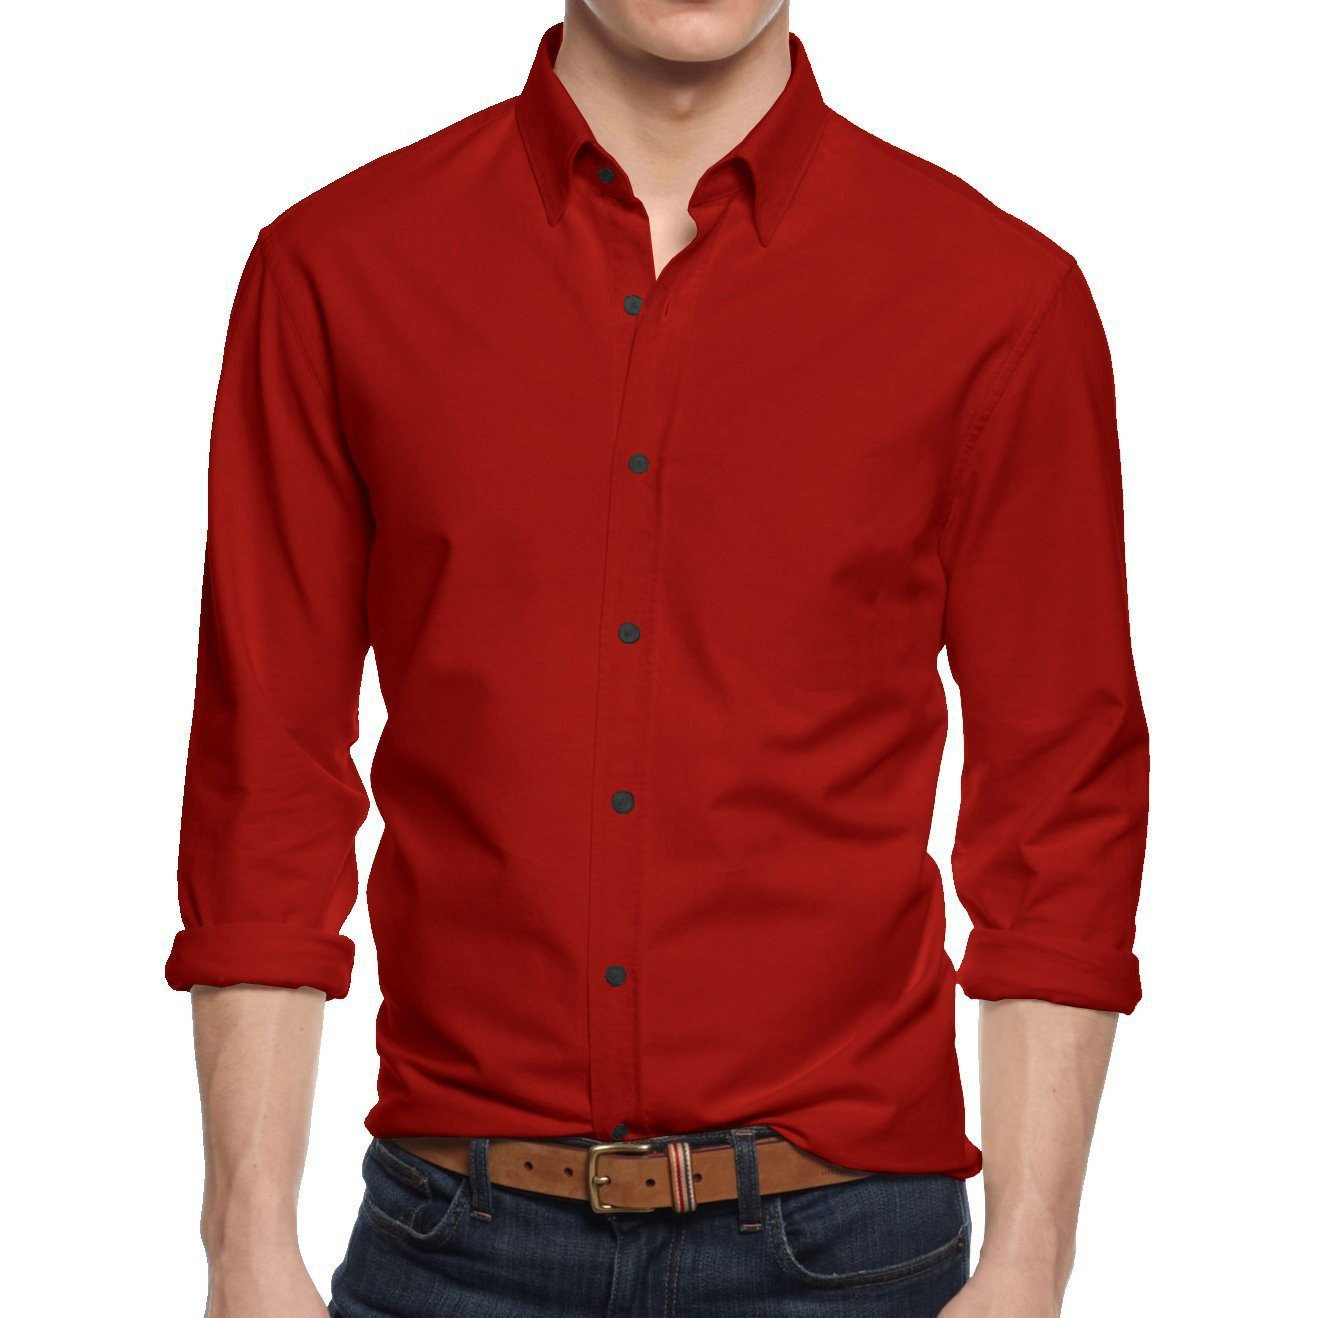 HB Mens Button Down Dress Shirt Casual Long Sleeve Slim Fit (Large / 16-16.5, Red)